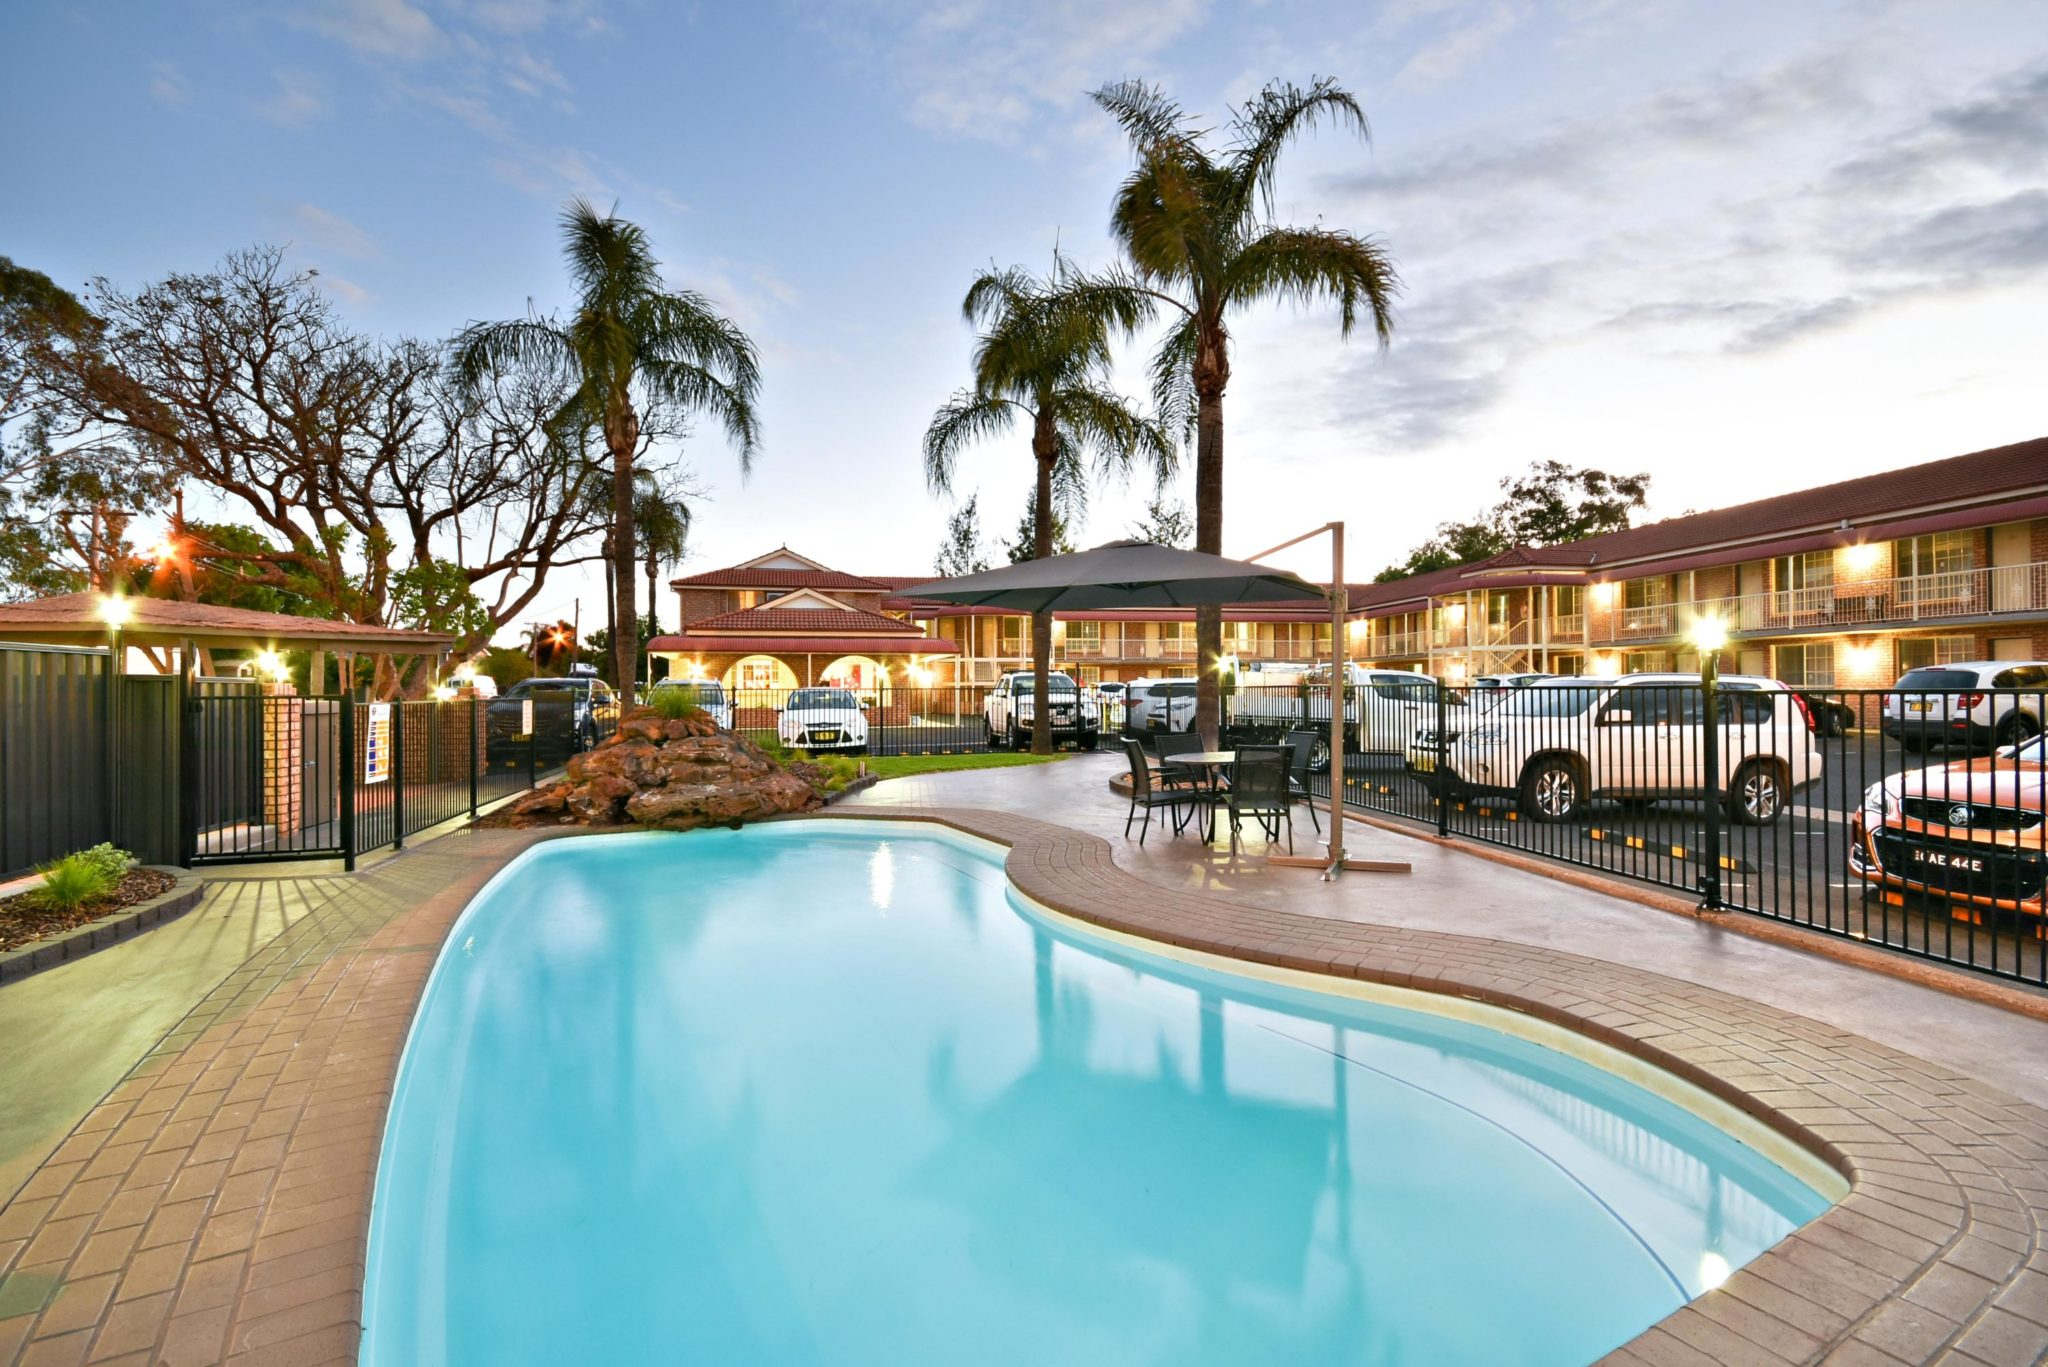 Perfect for hot summer days, the Aberdeen Motel in Dubbo features a nice big pool